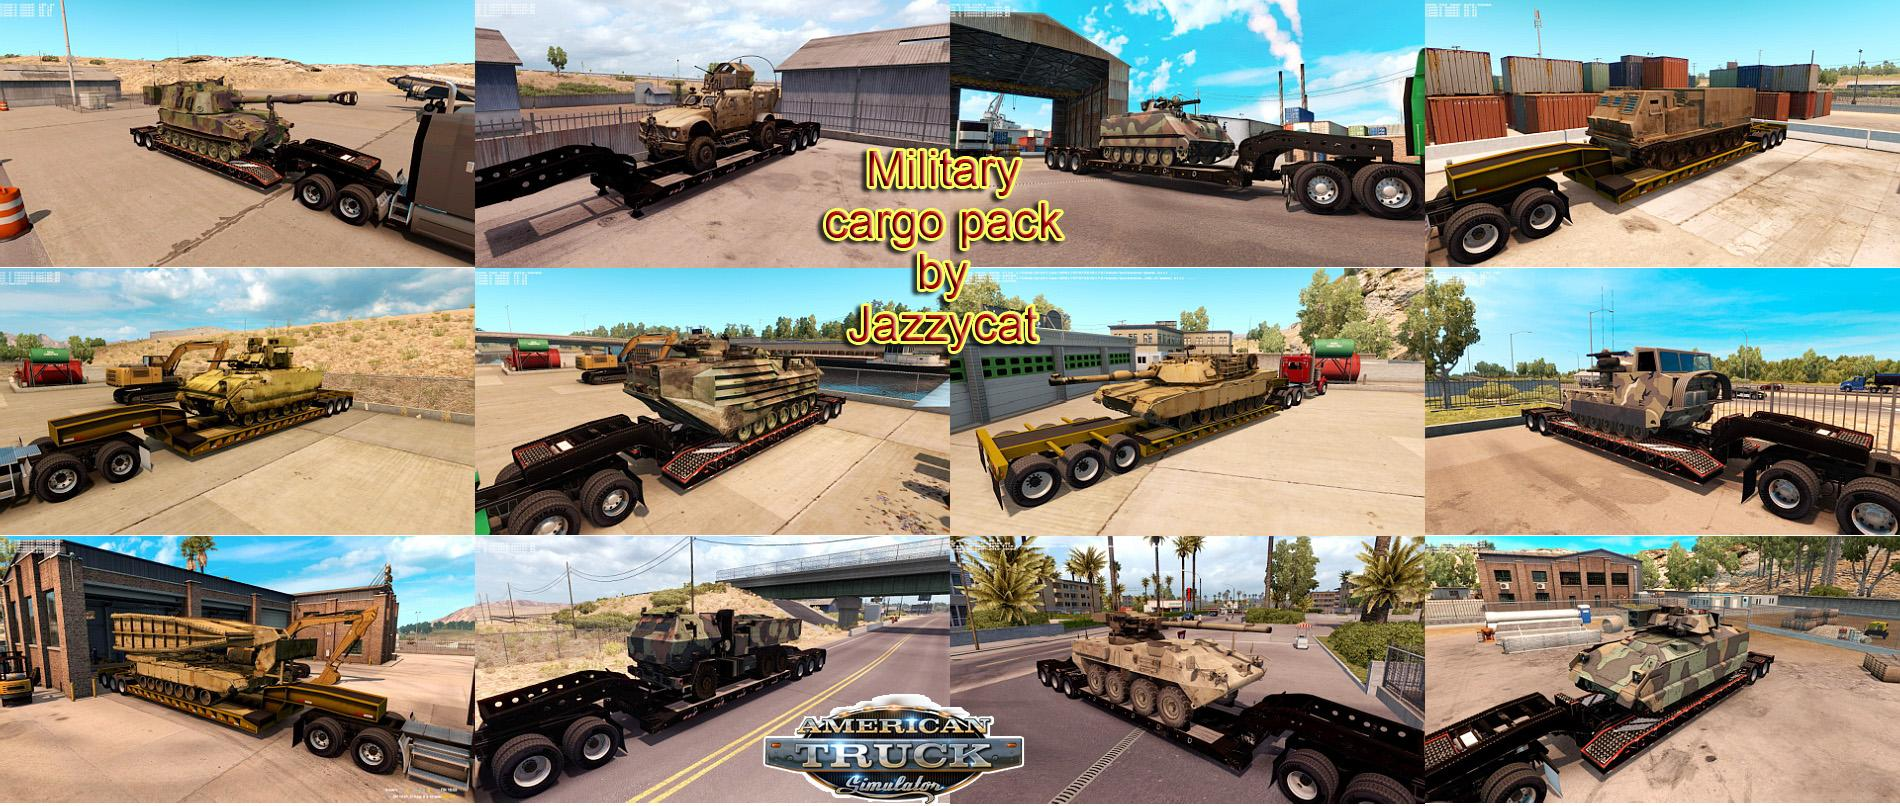 ATS Military Cargo Pack v1.0.1 by Jazzycat (v1.6.x)